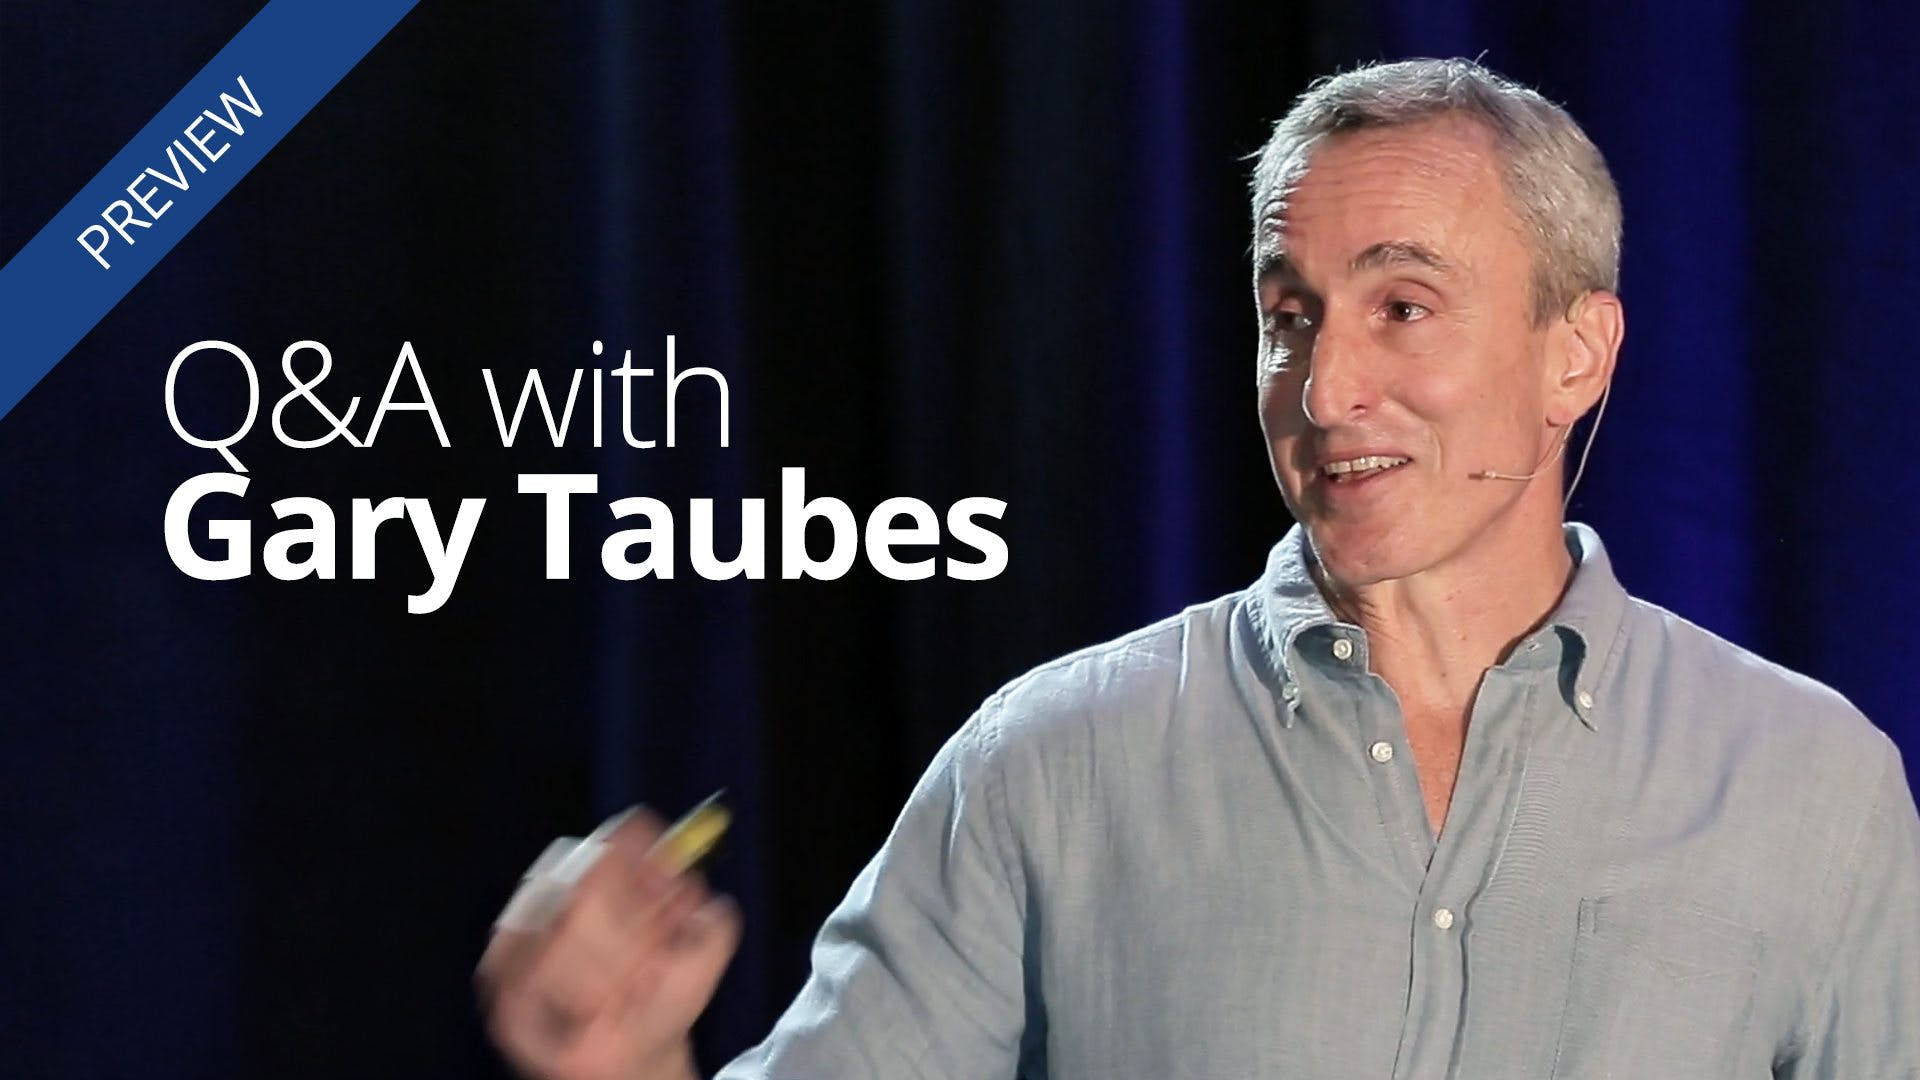 NuSI, Kevin Hall and the Energy Balance Hypothesis – Q&A with Gary Taubes